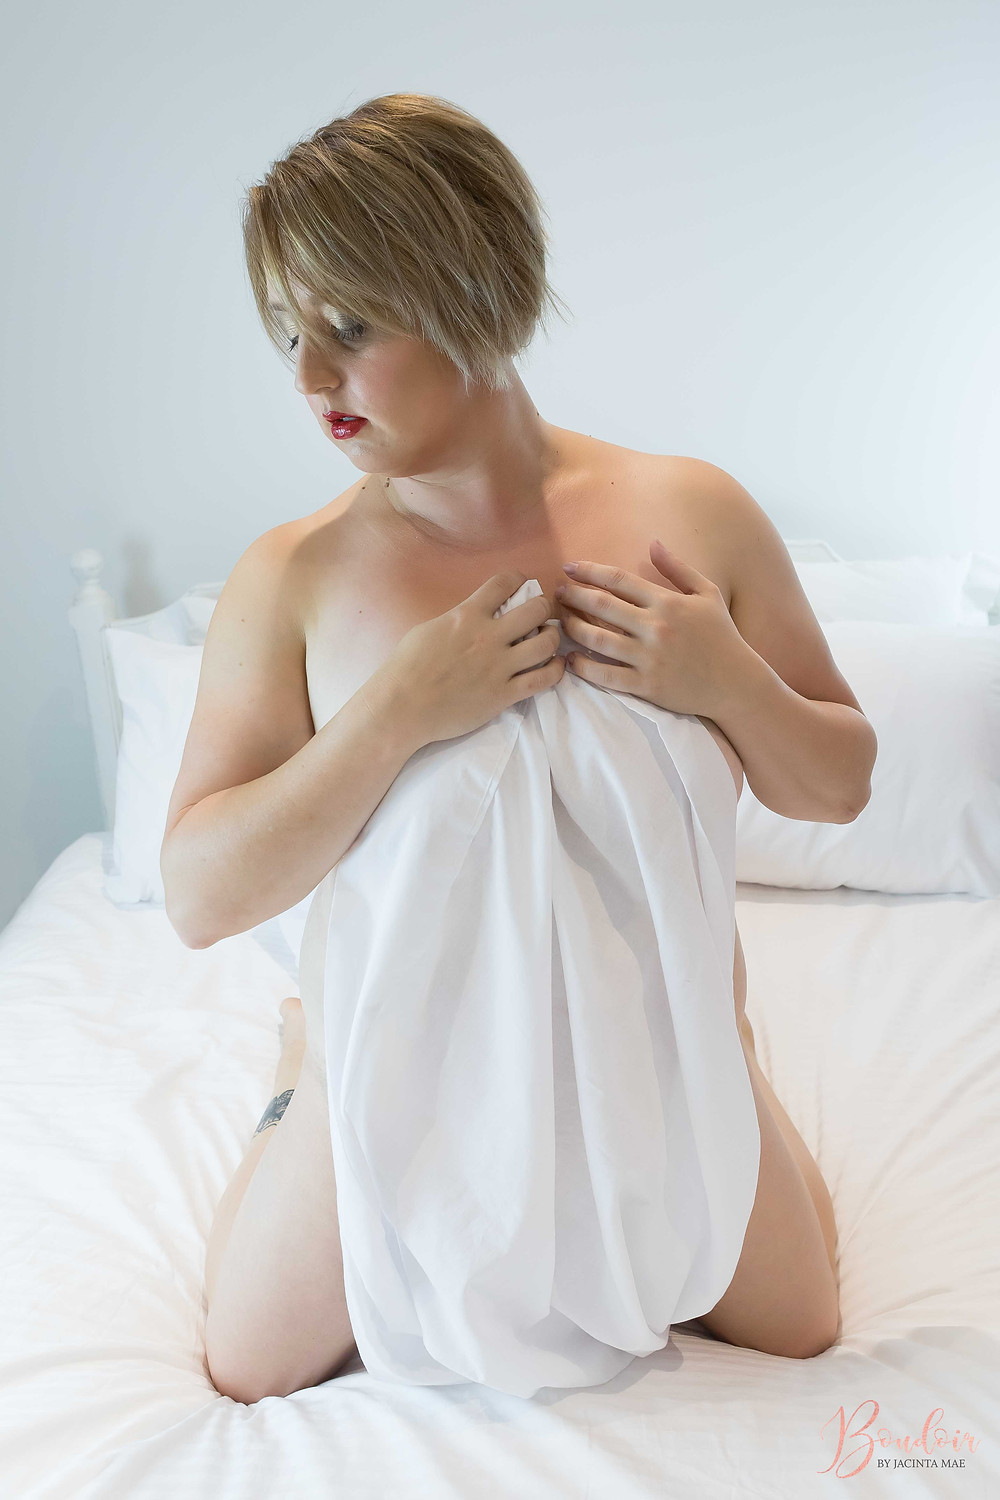 Natural Light Boudoir Photography Melbourne Mother White Sheets Bed